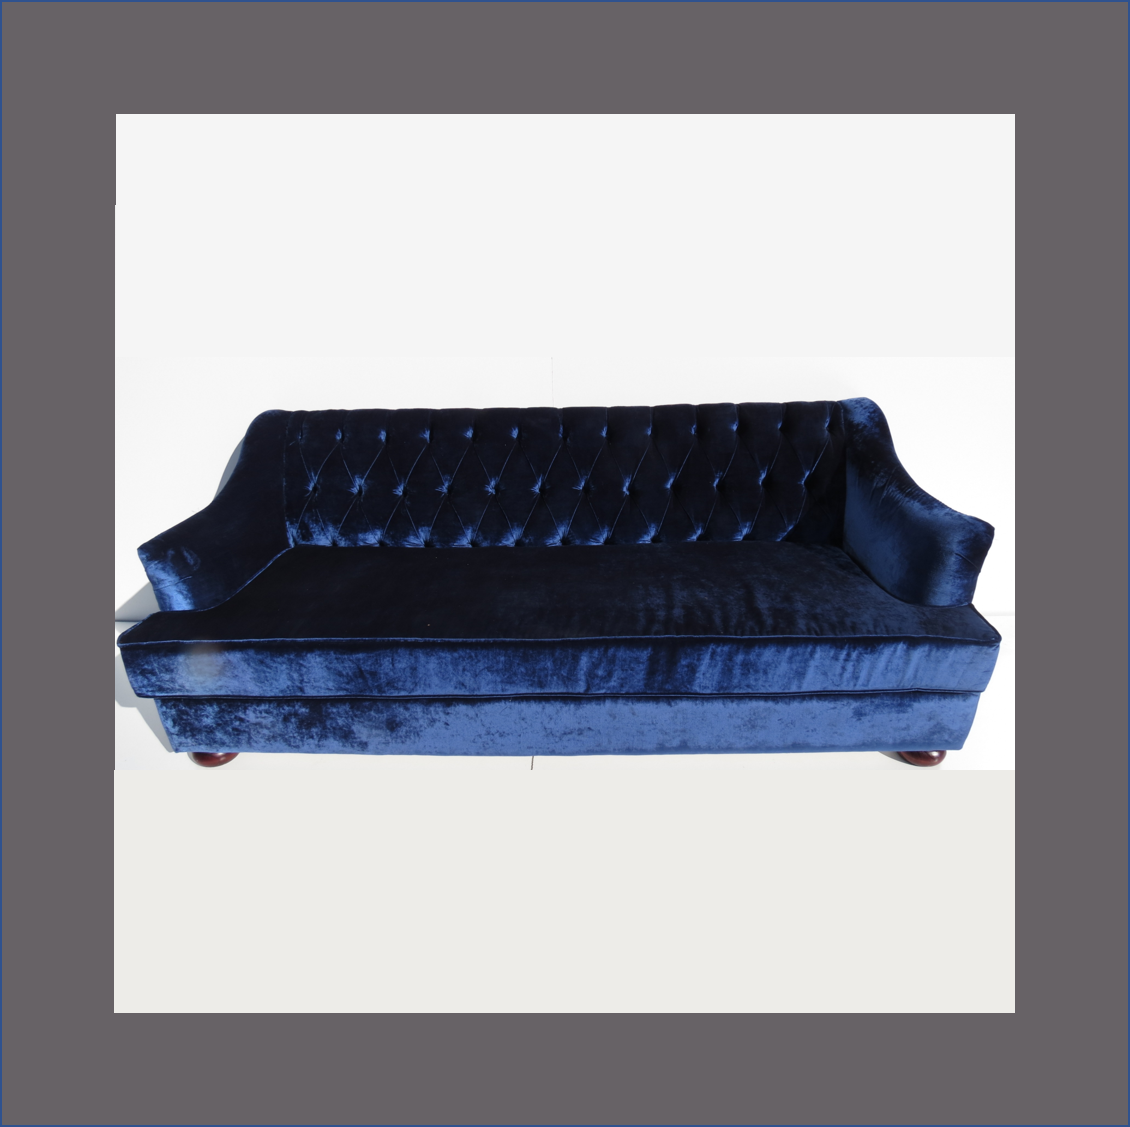 blue-velvet-chesterfield-couch